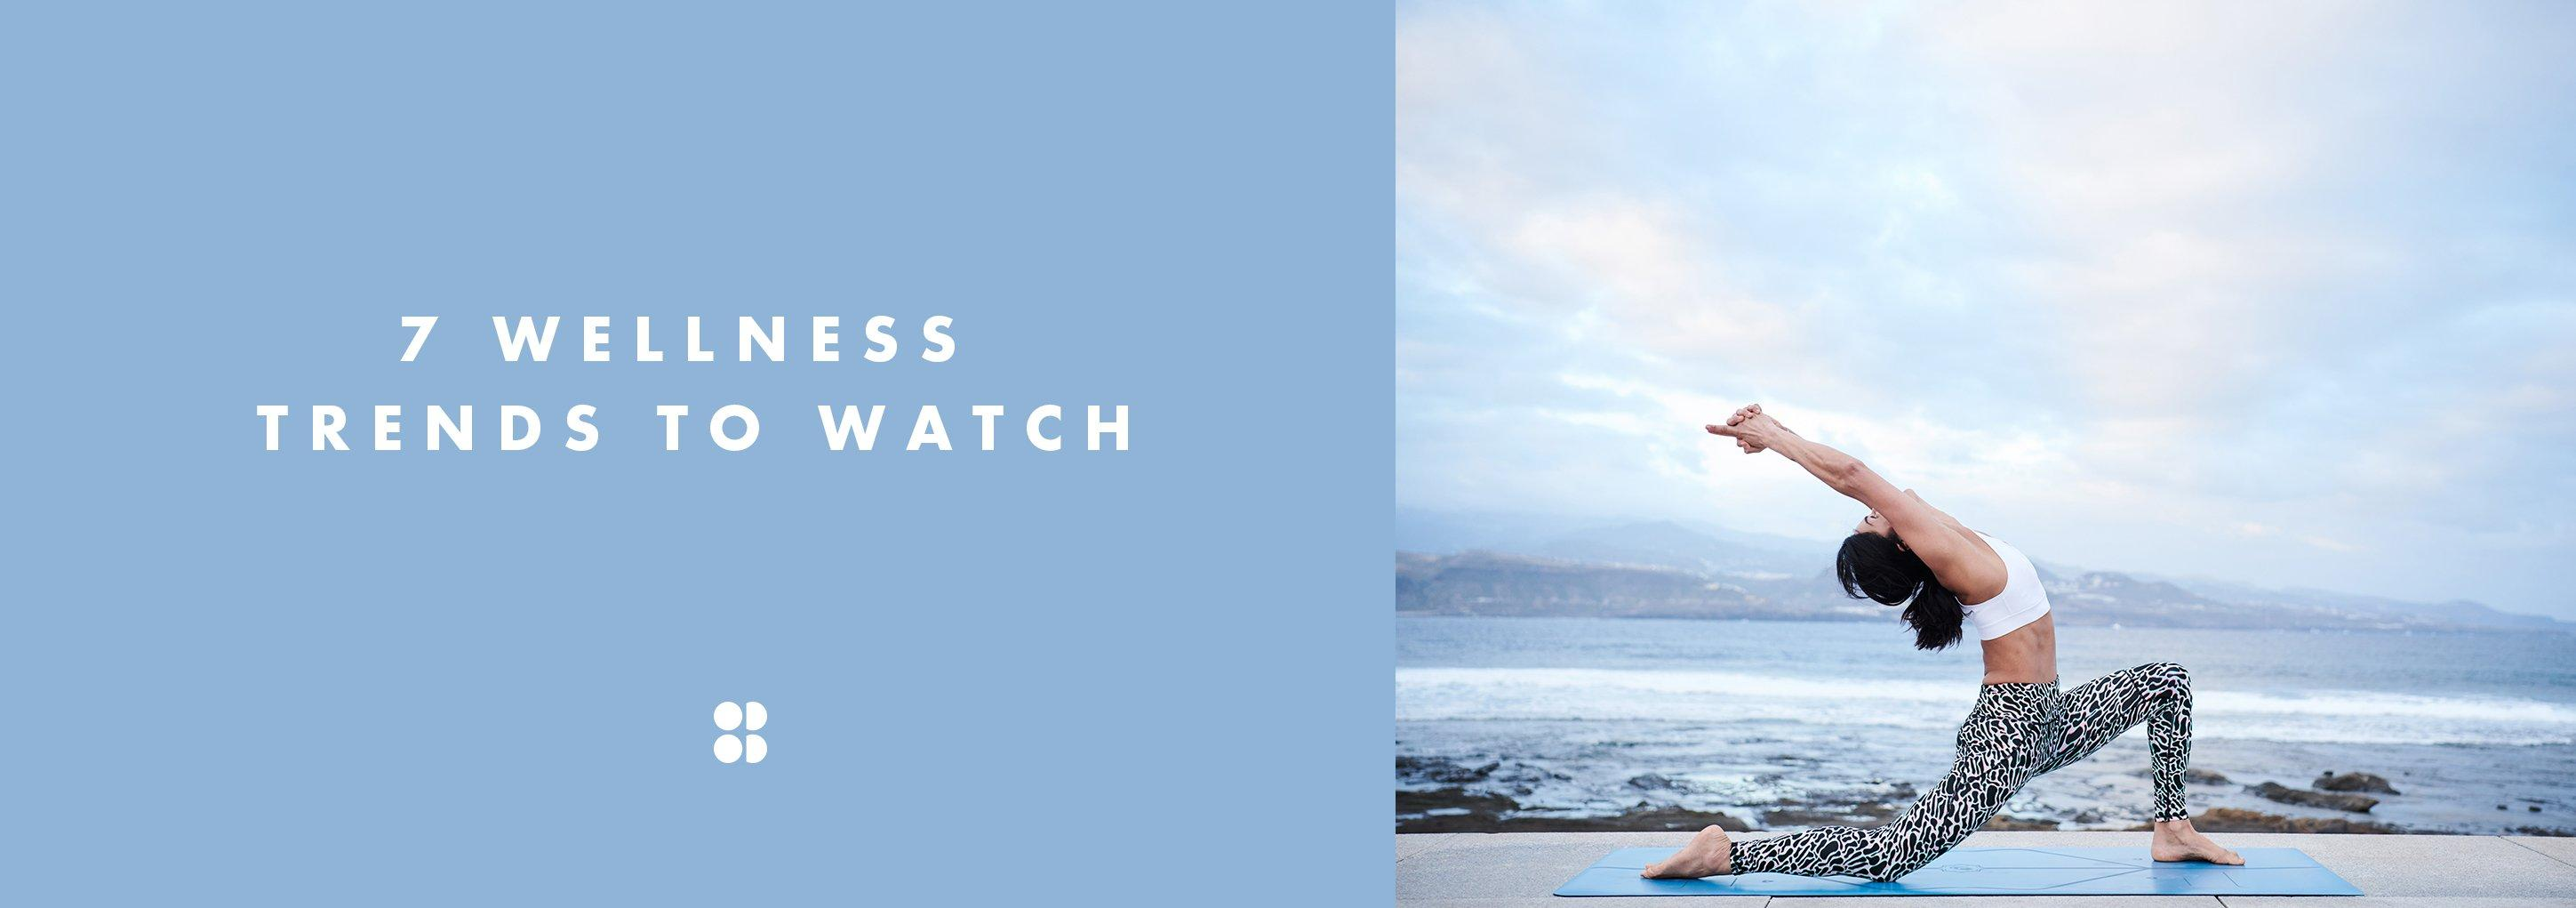 7 Wellness Trends To Watch